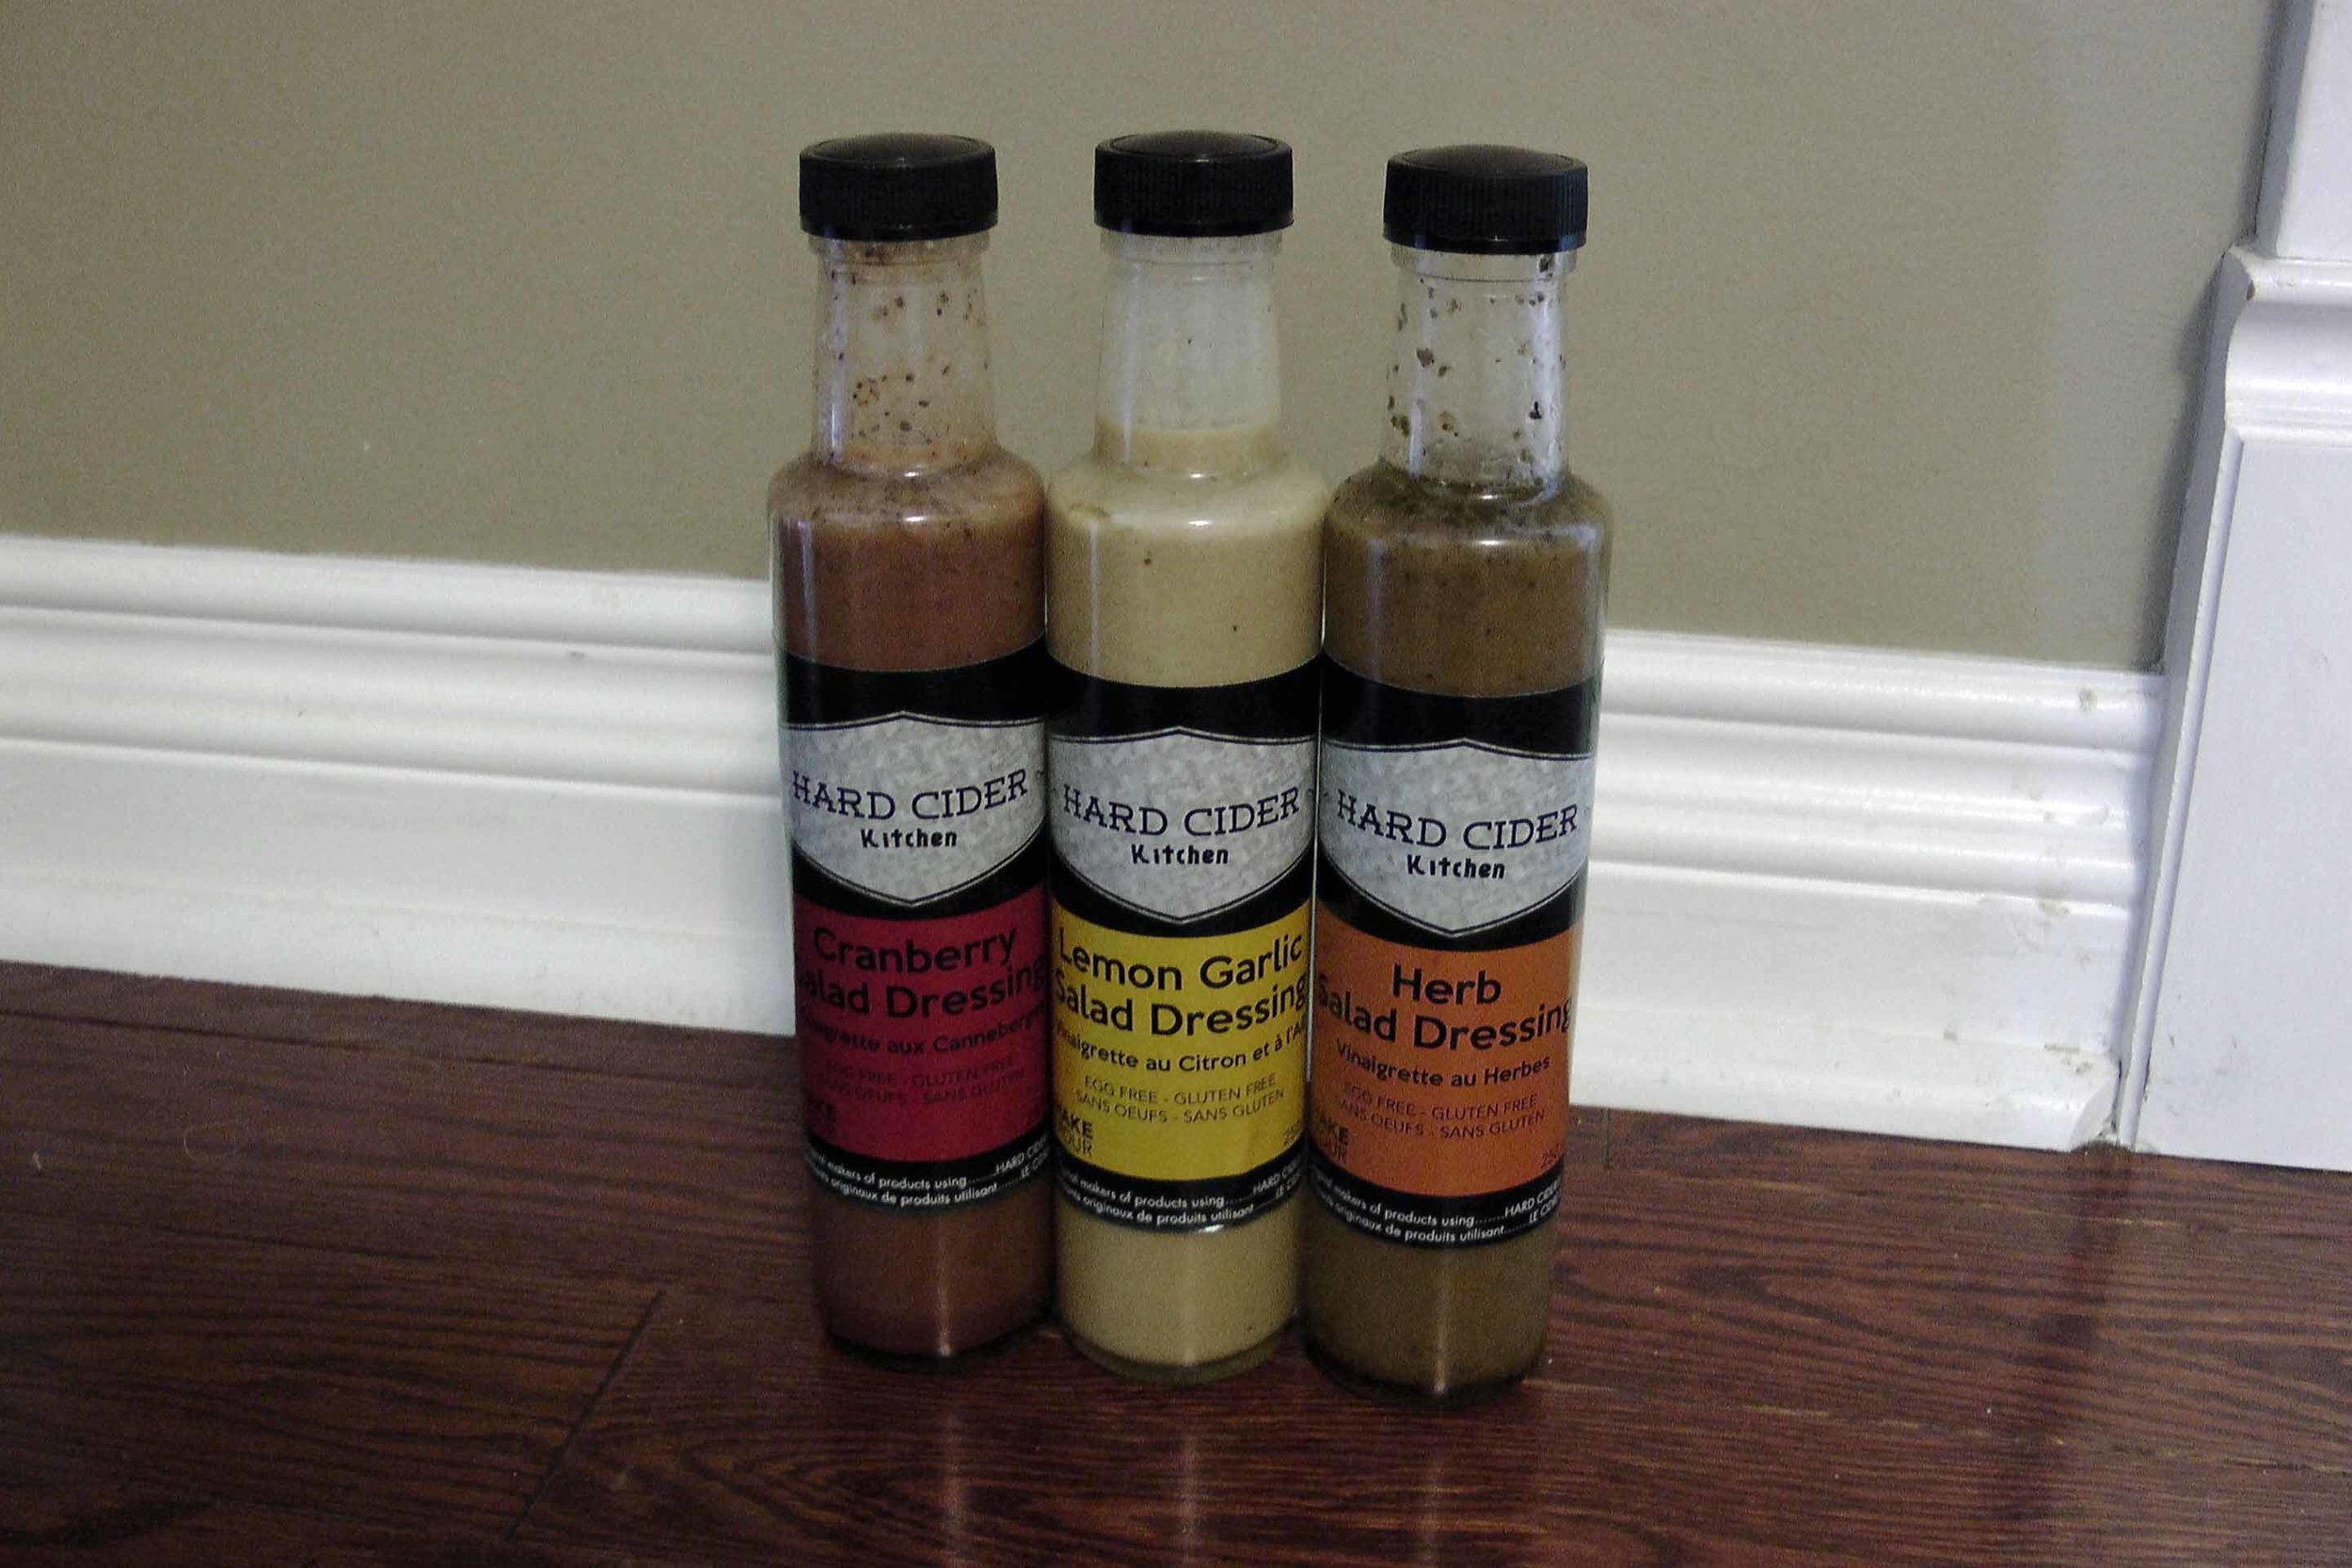 Hard Cider Kitchen - Salad Dressing.jpg